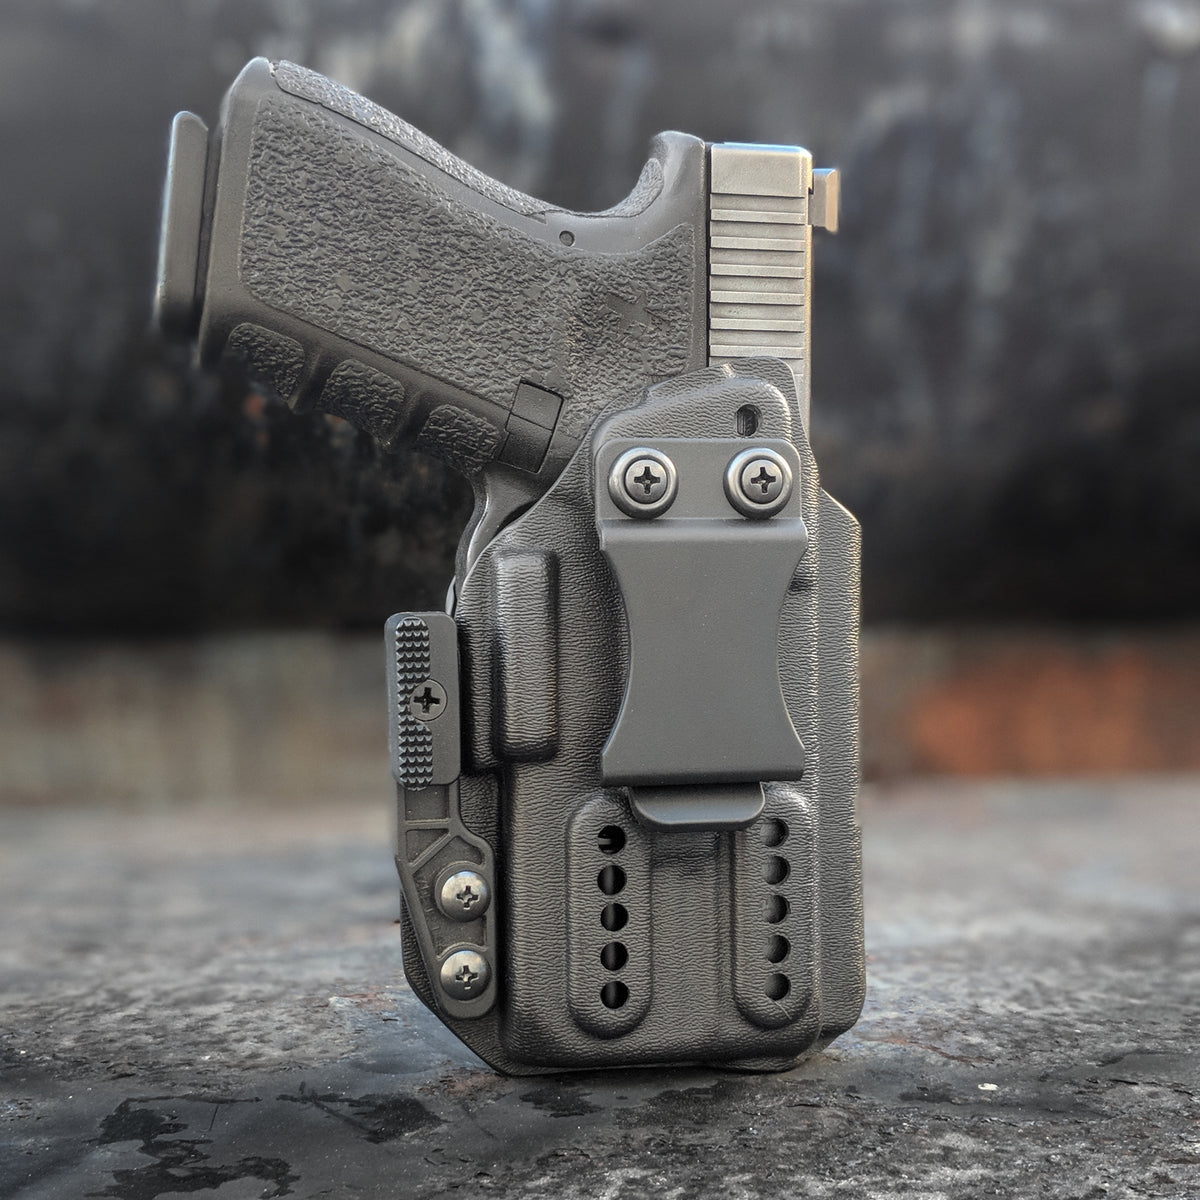 BSD HOLSTERS: Comfort and Quality for Everyday Concealment